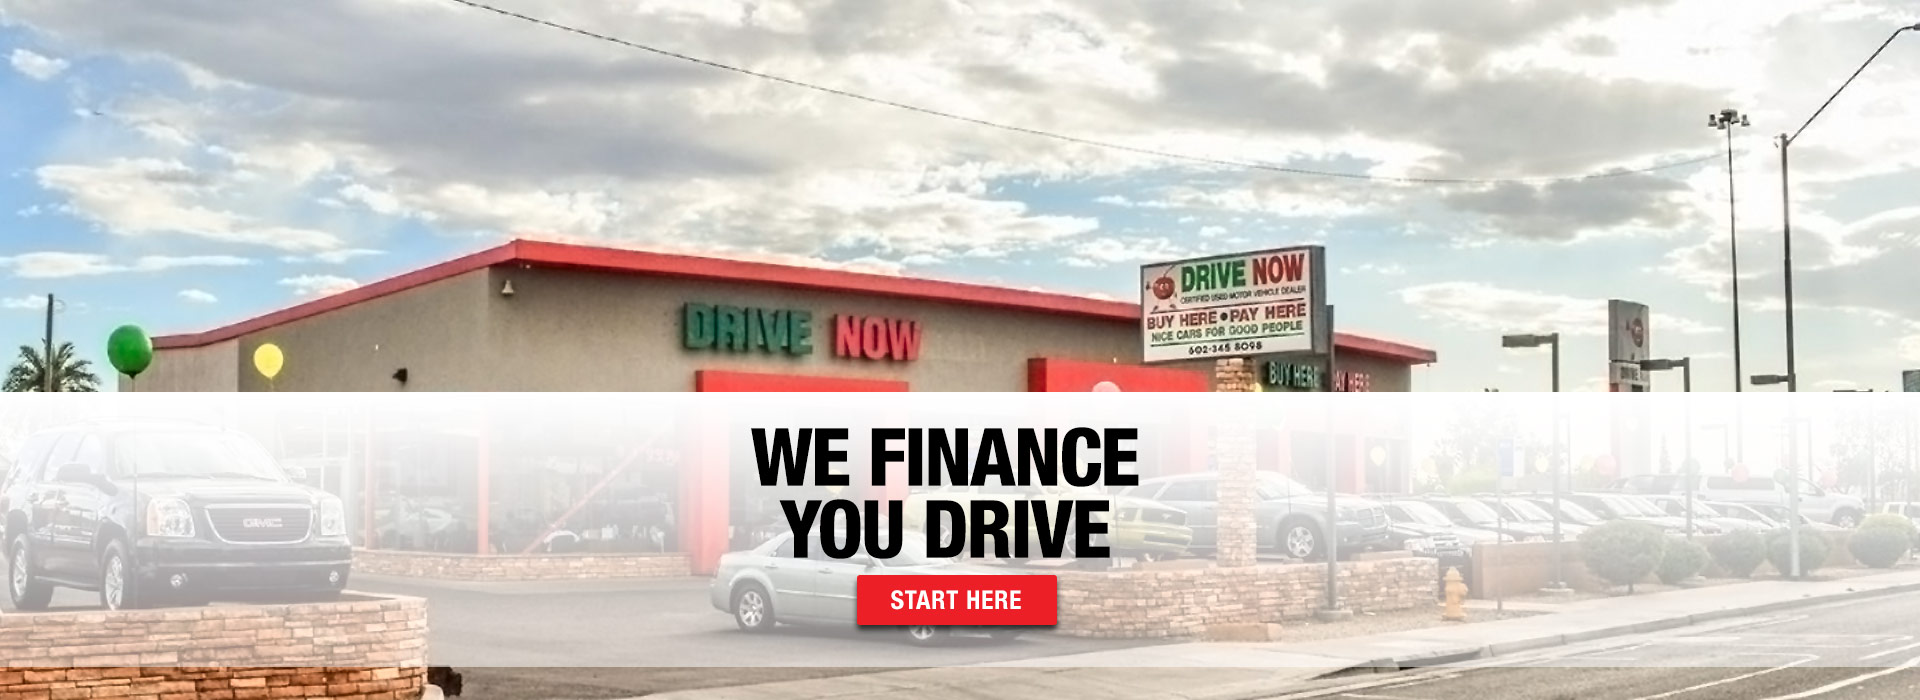 We Finance, You Drive